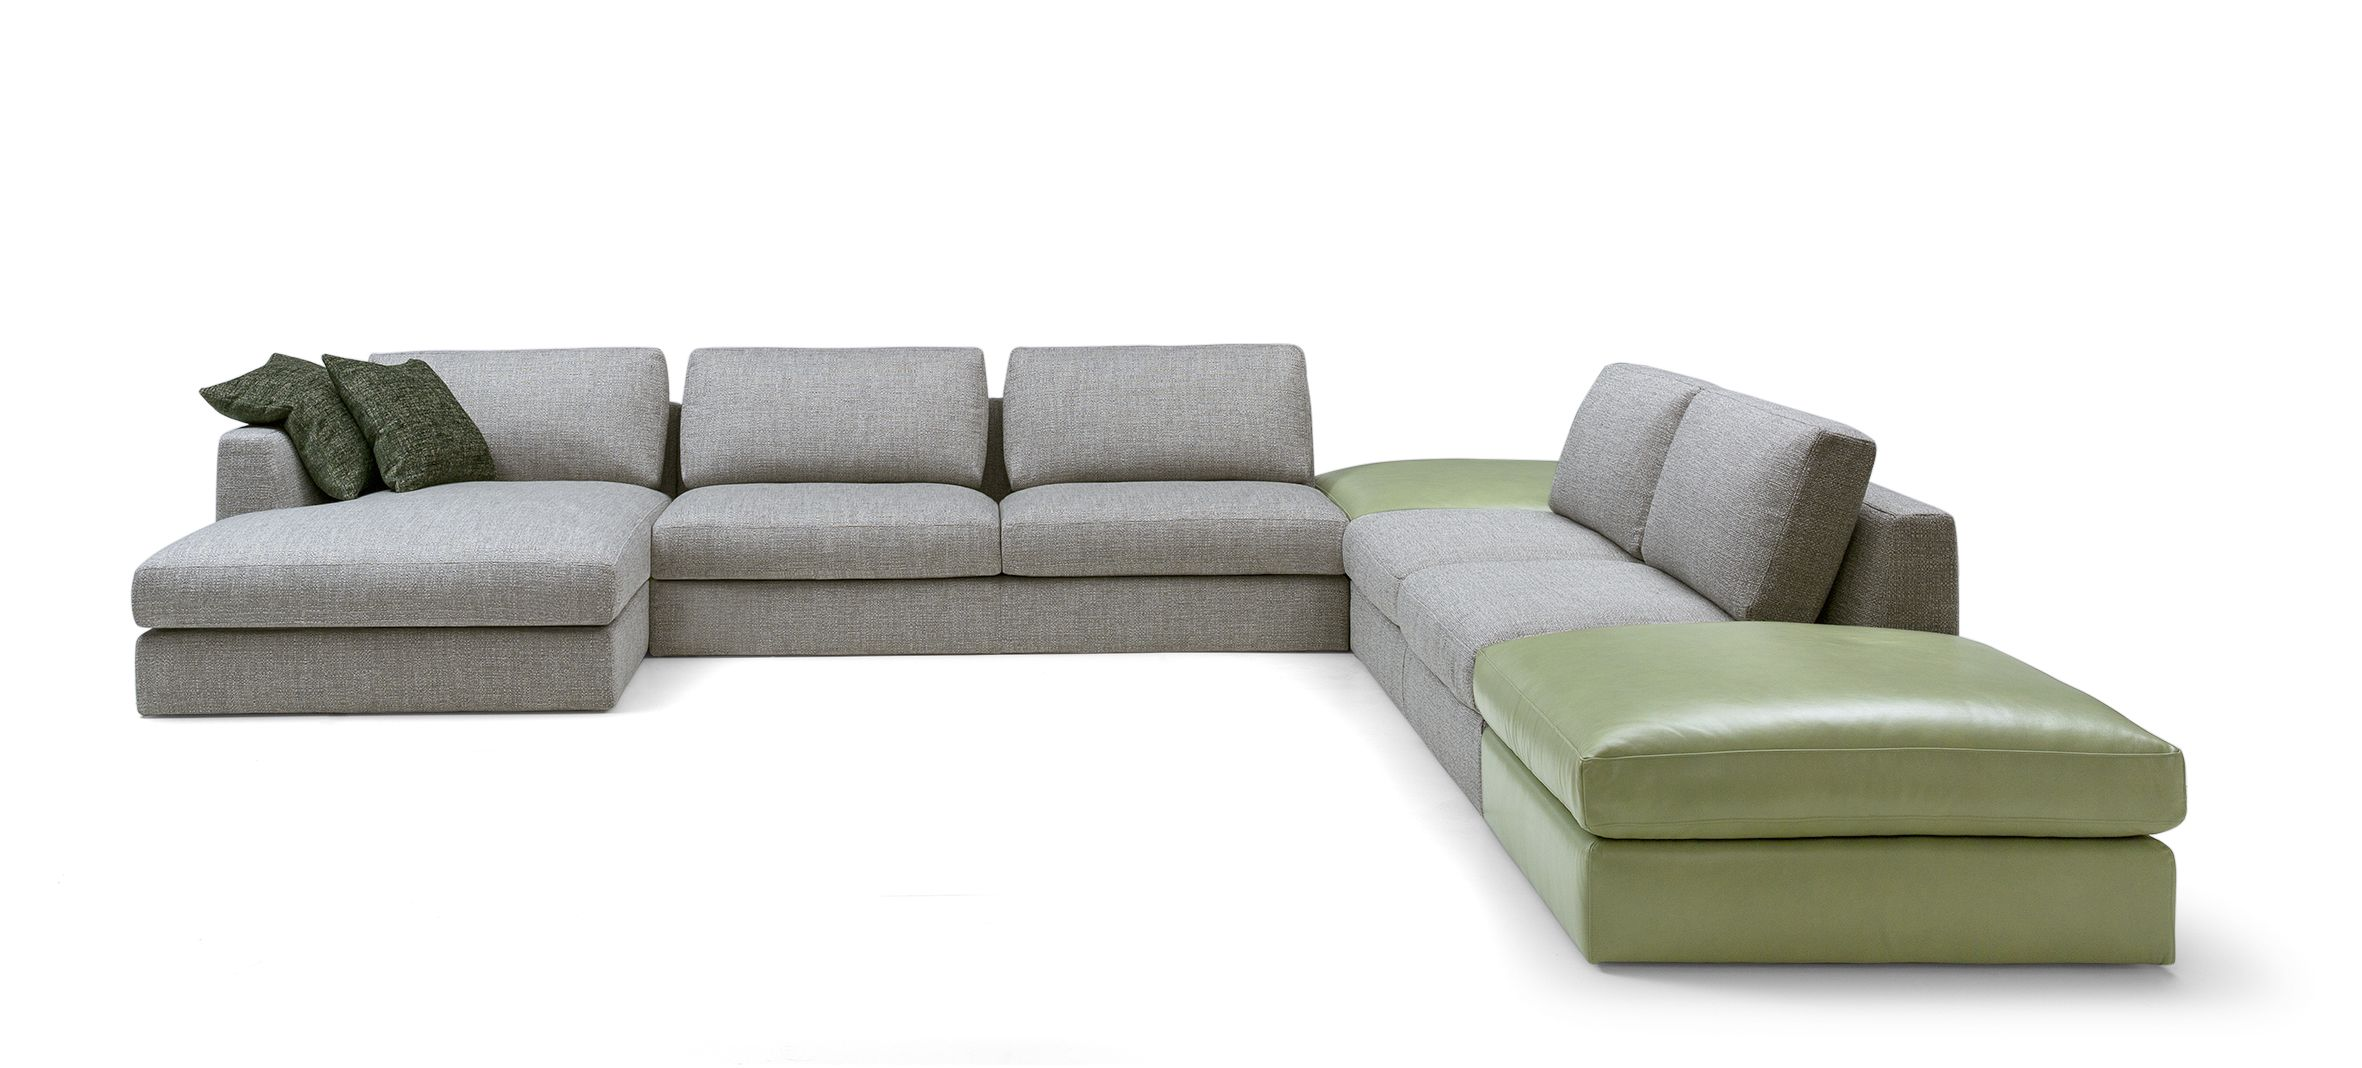 London Collection By Giuseppe Manzoni For Bodema Zitbank Design Sofa Raum London